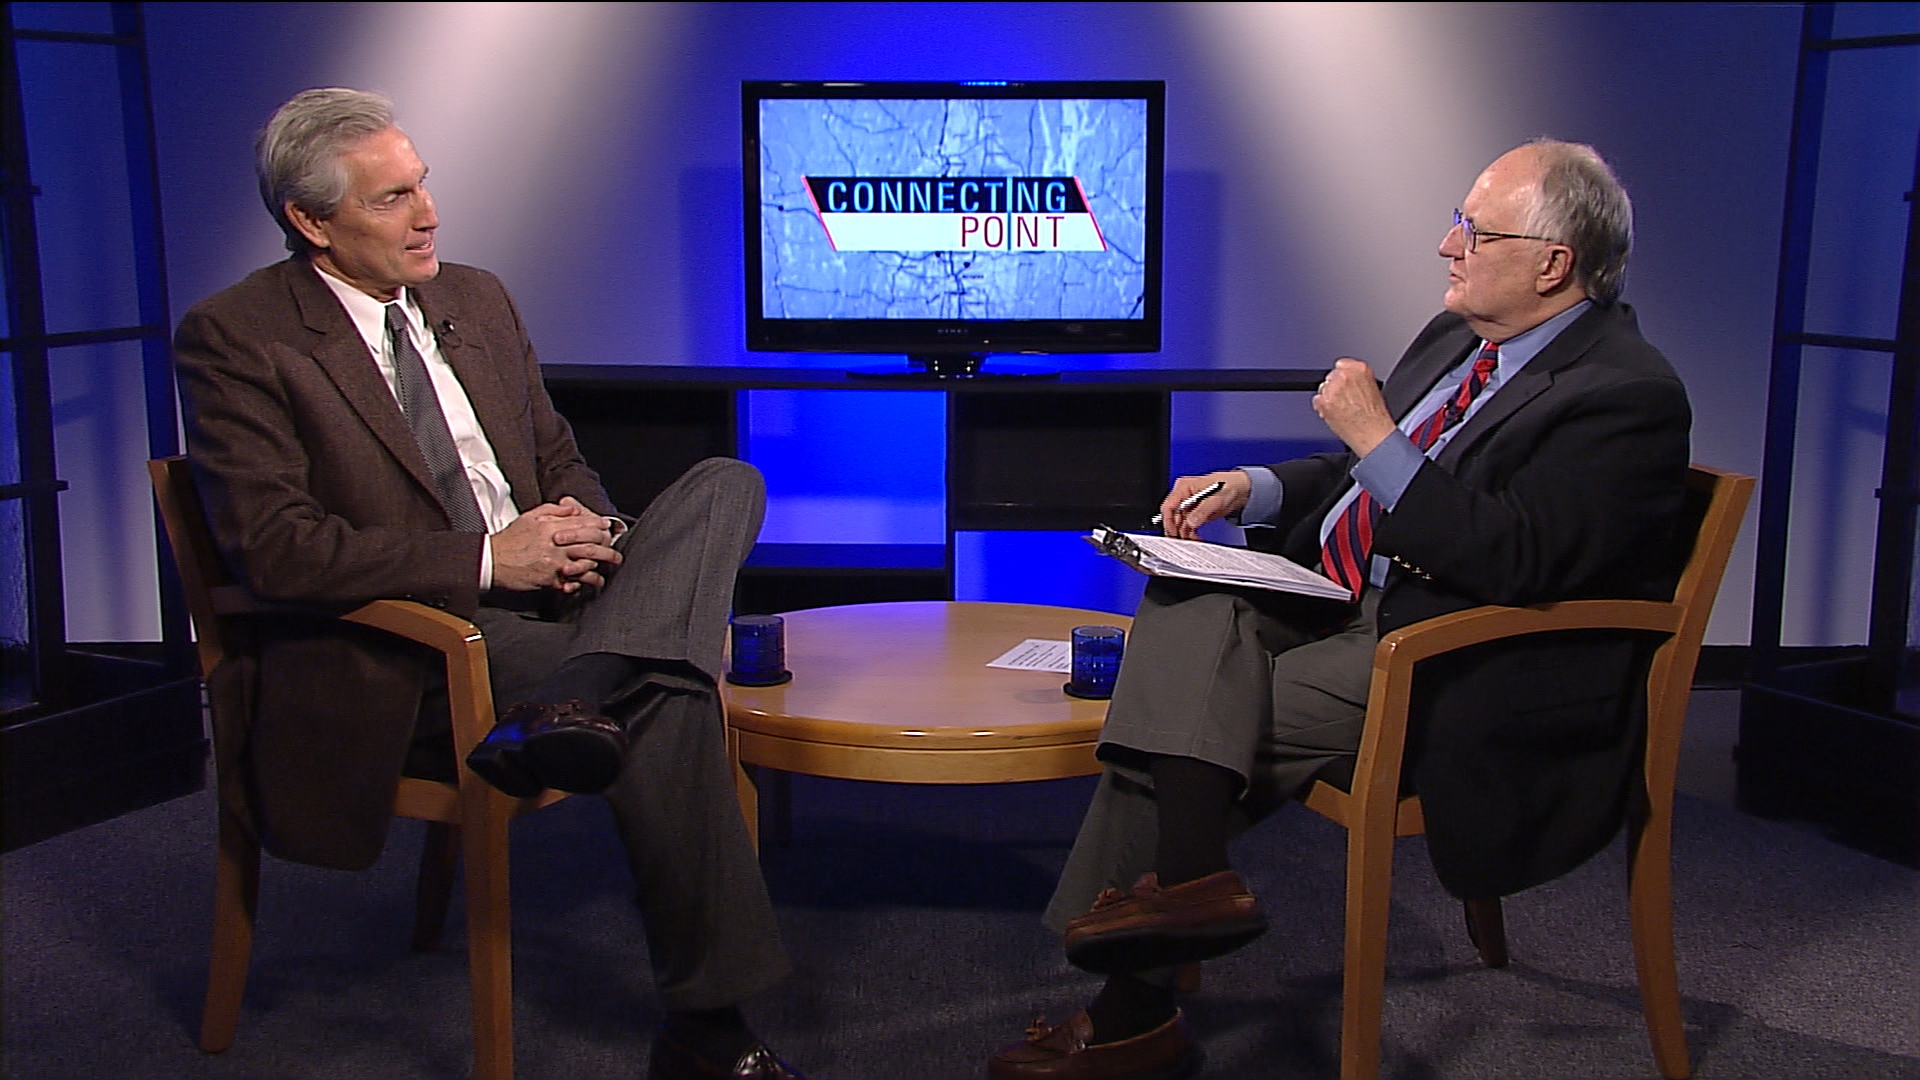 Former political consultant Paul Robbins and Jim Madigan explore the political landscape heading into the 2016 election on November 8, 2016.